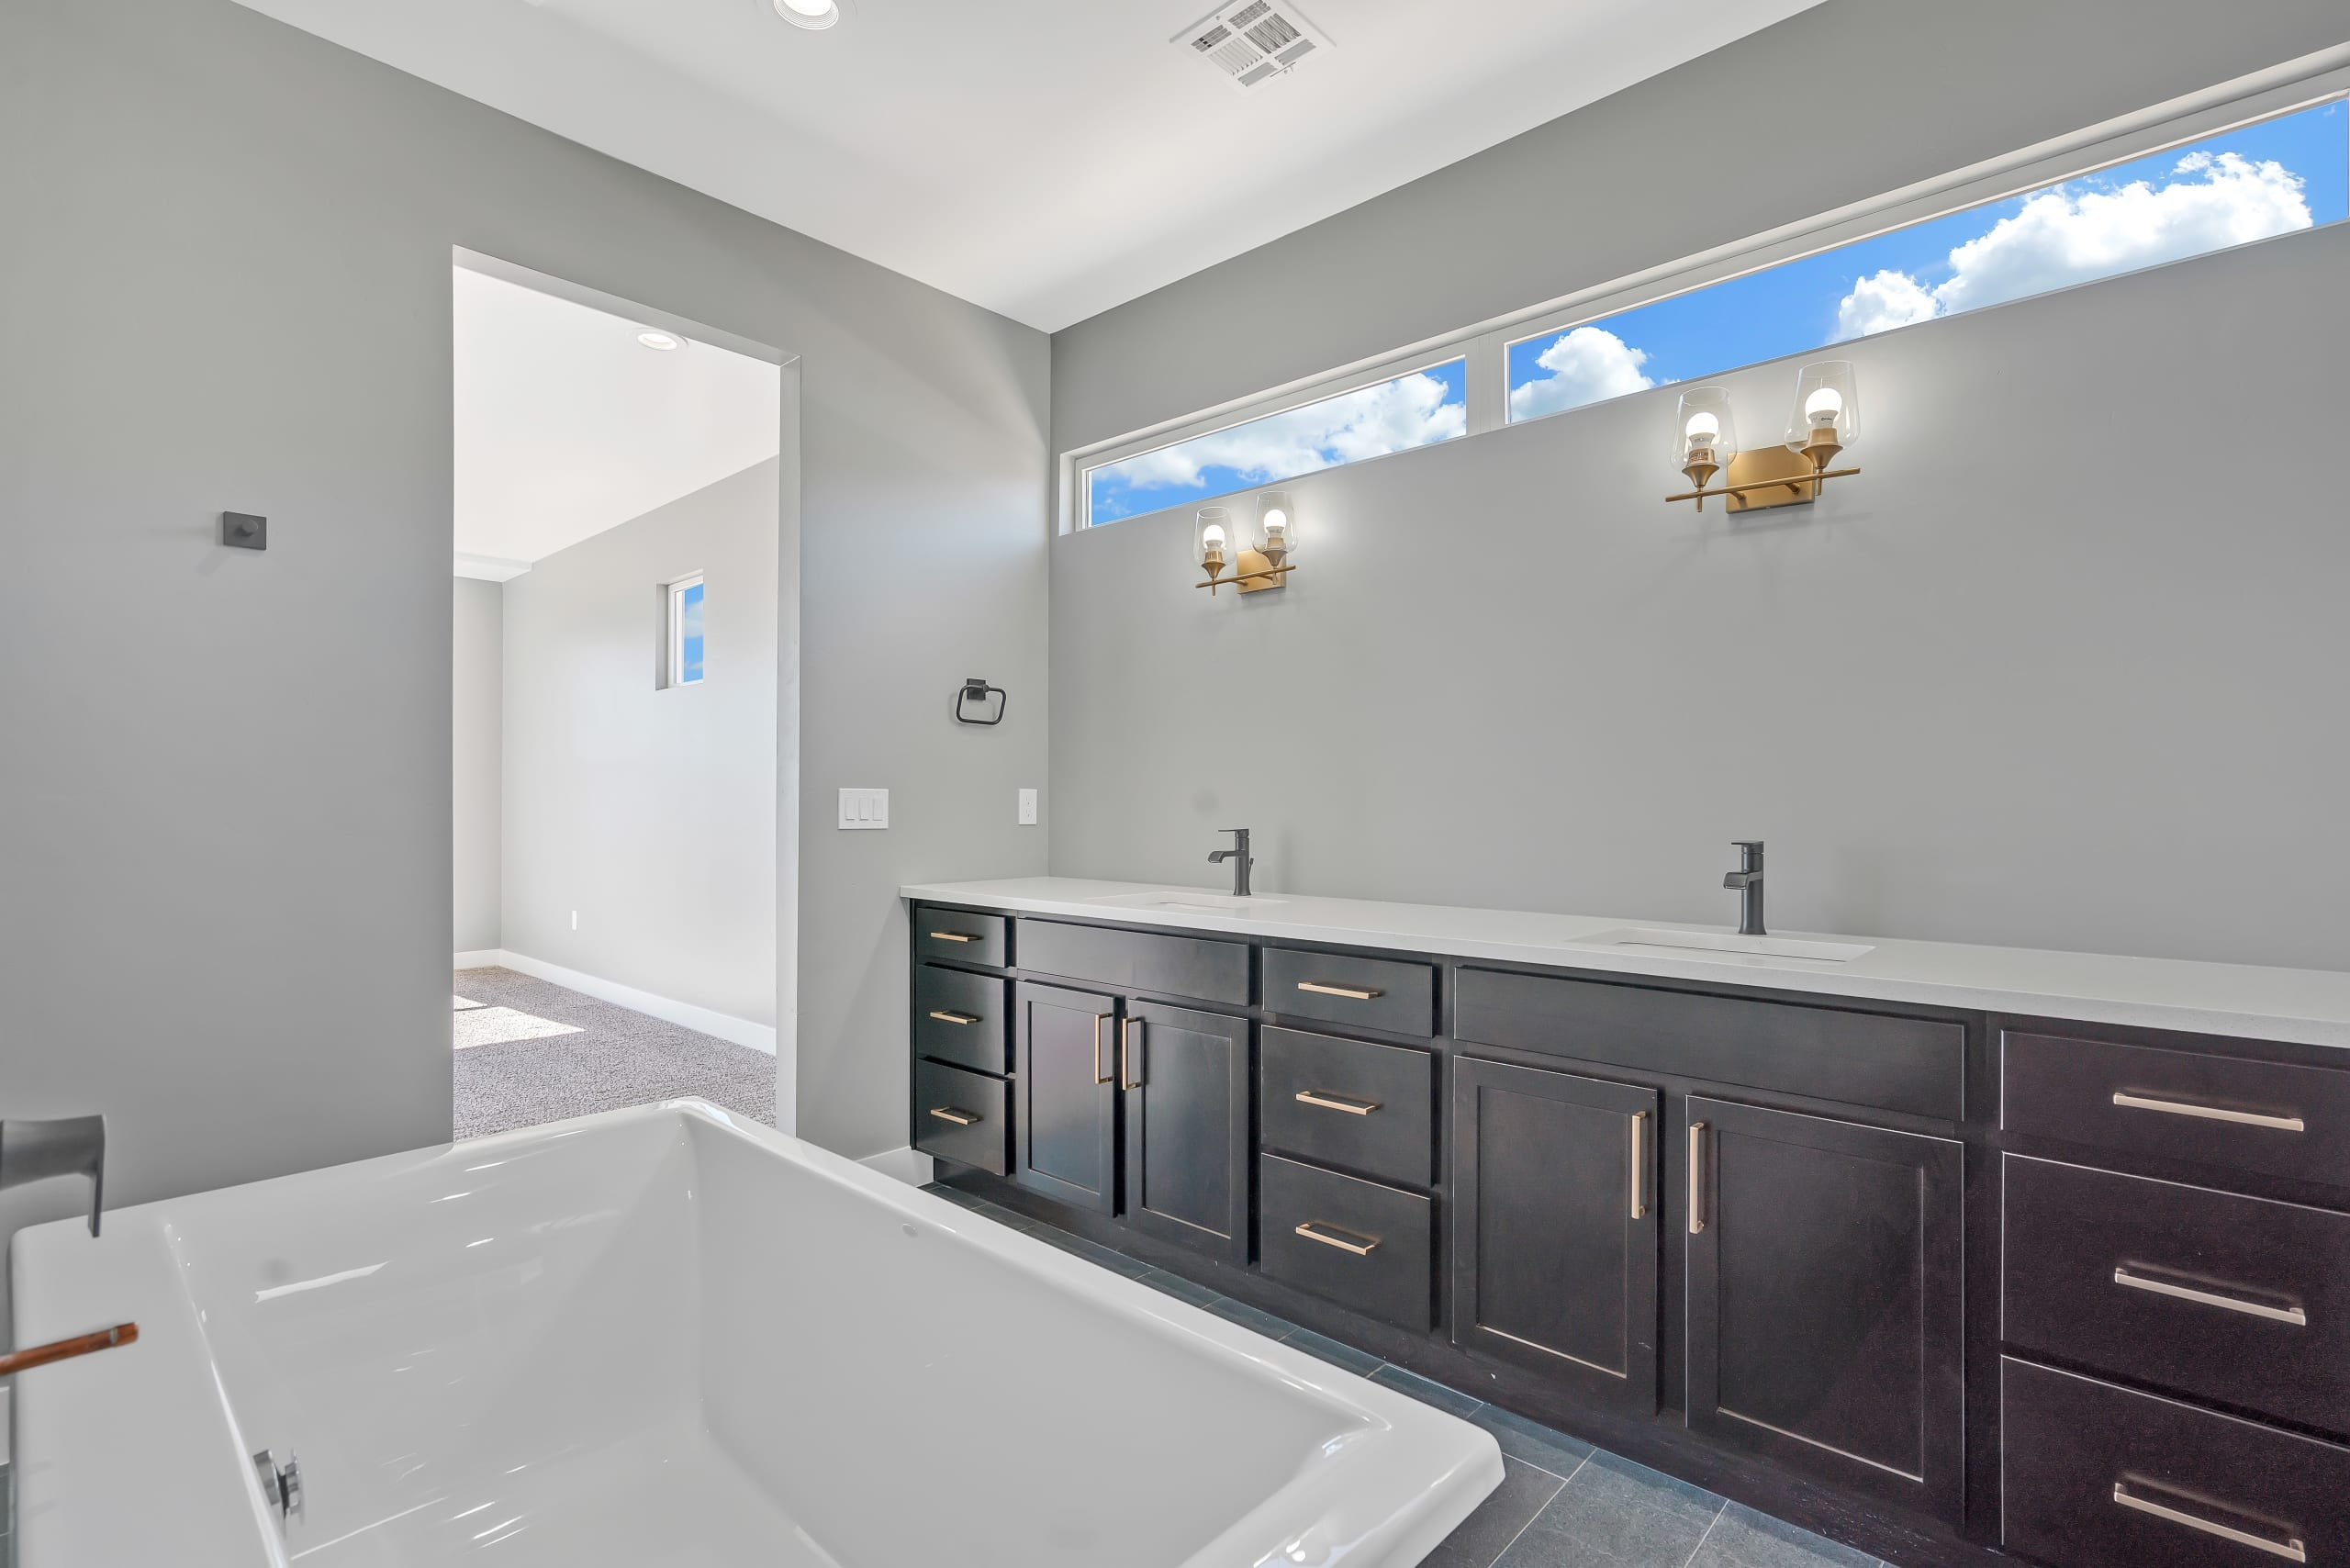 Master Bathroom - Dual Sinks - View from behind the tub